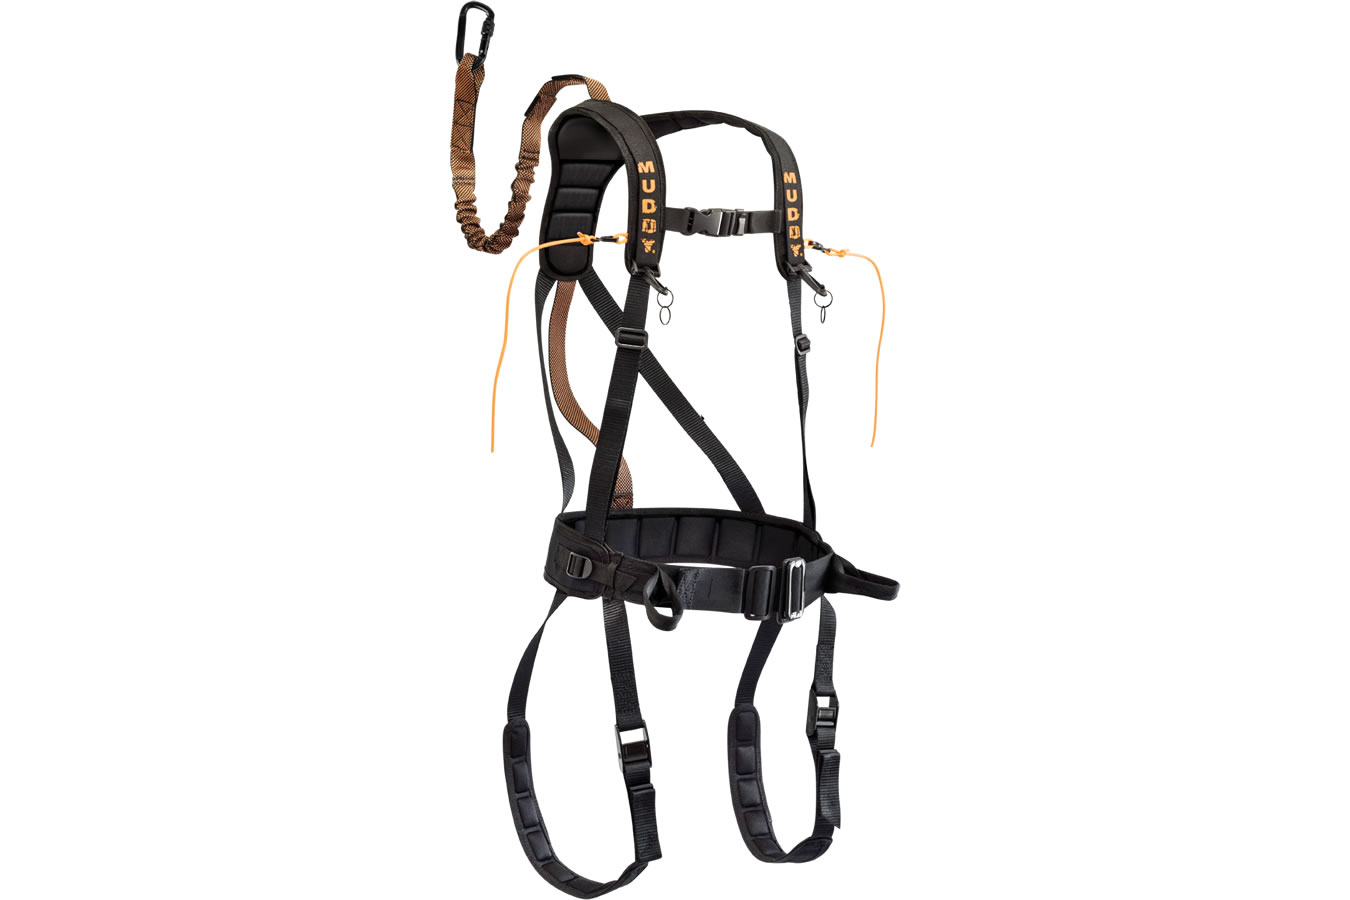 Muddy Outdoors Llc Safeguard Harness Black Large